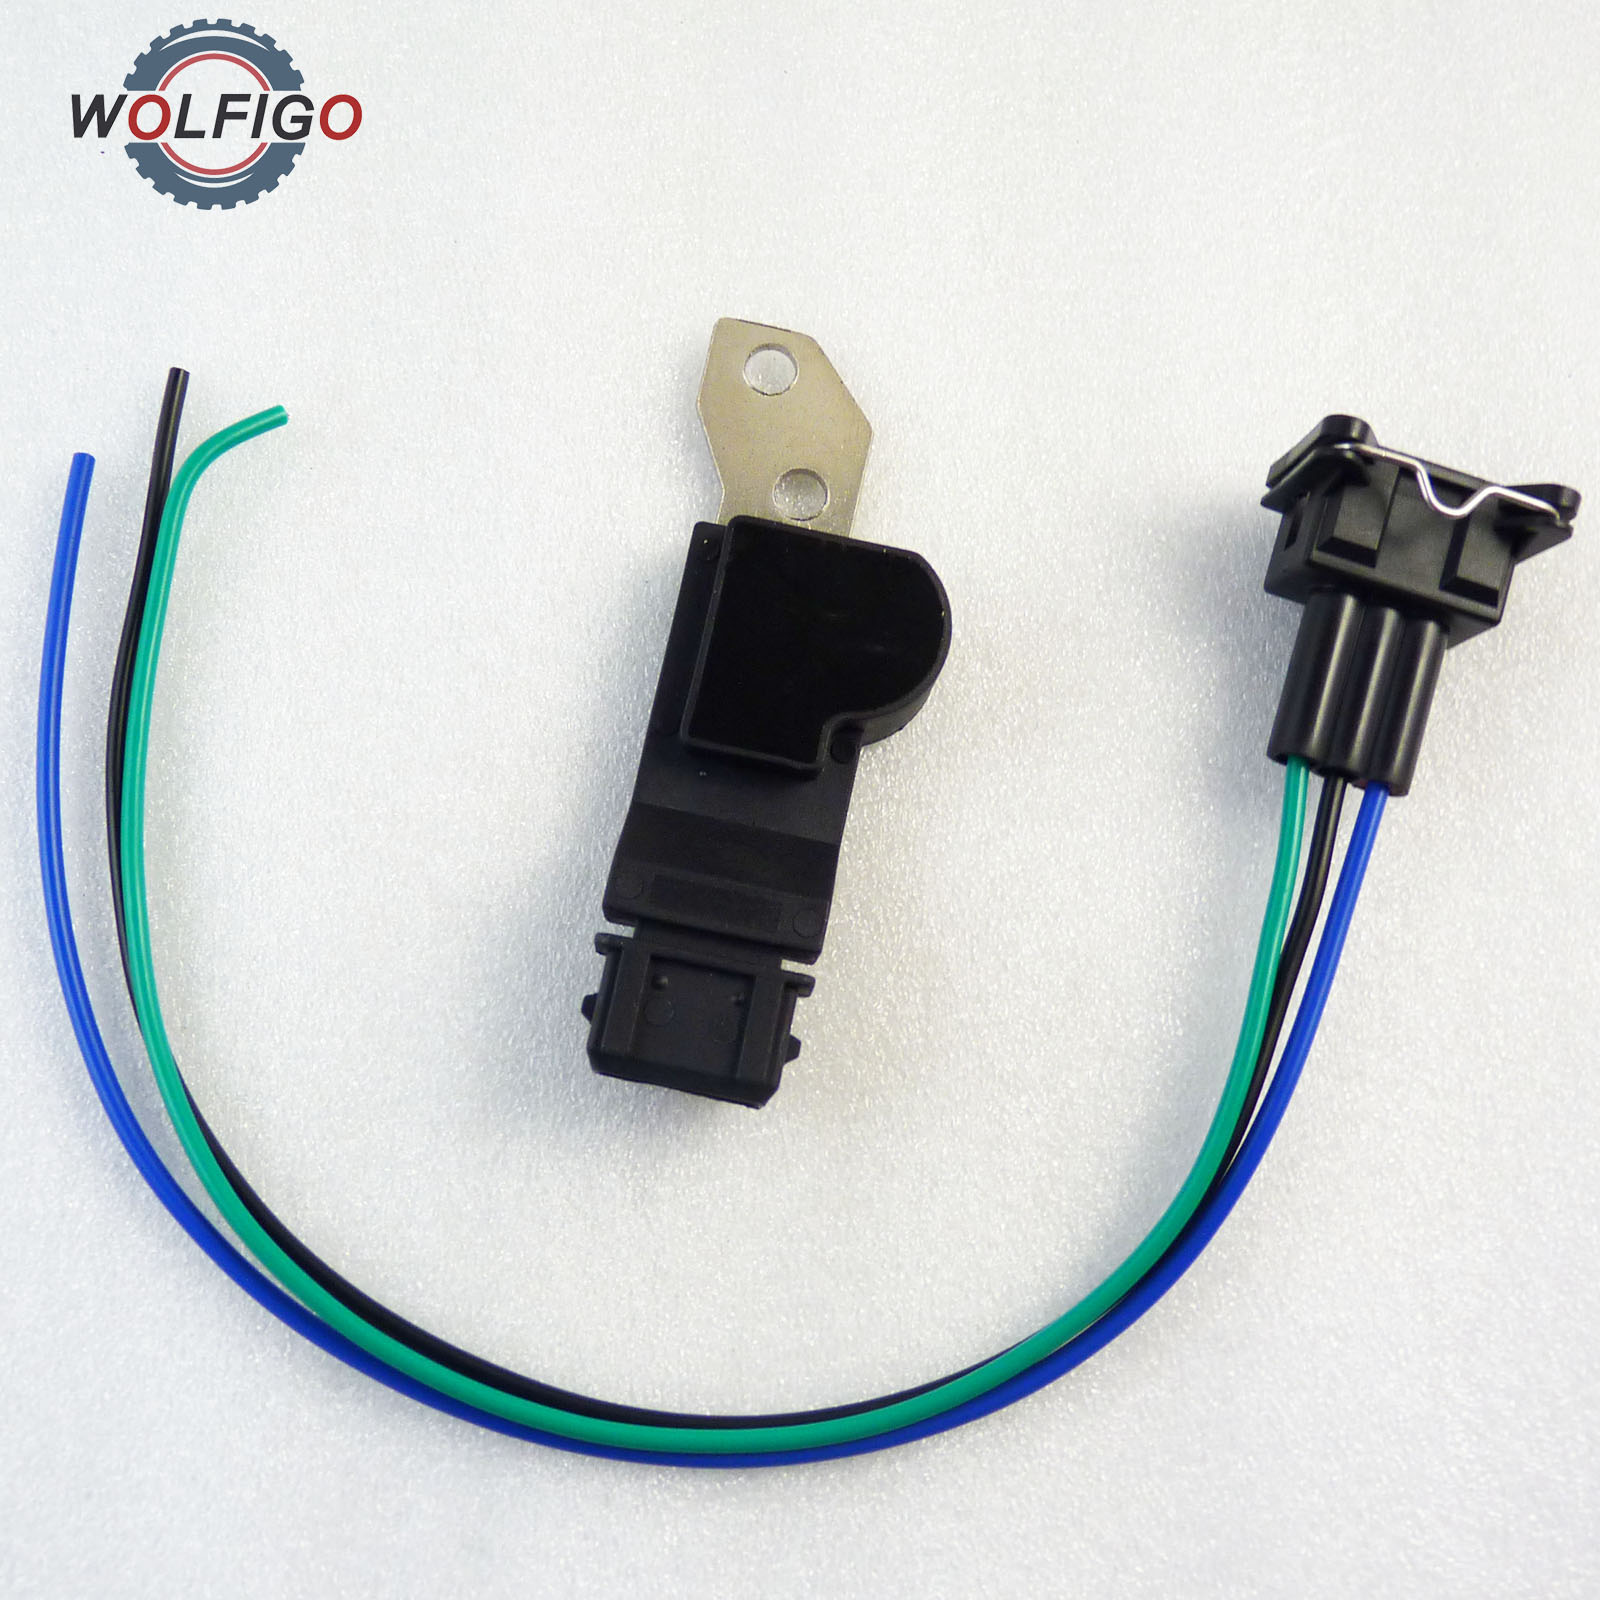 WOLFIGO CAMSHAFT POSITION SENSOR With PIGTAIL CONNECTOR